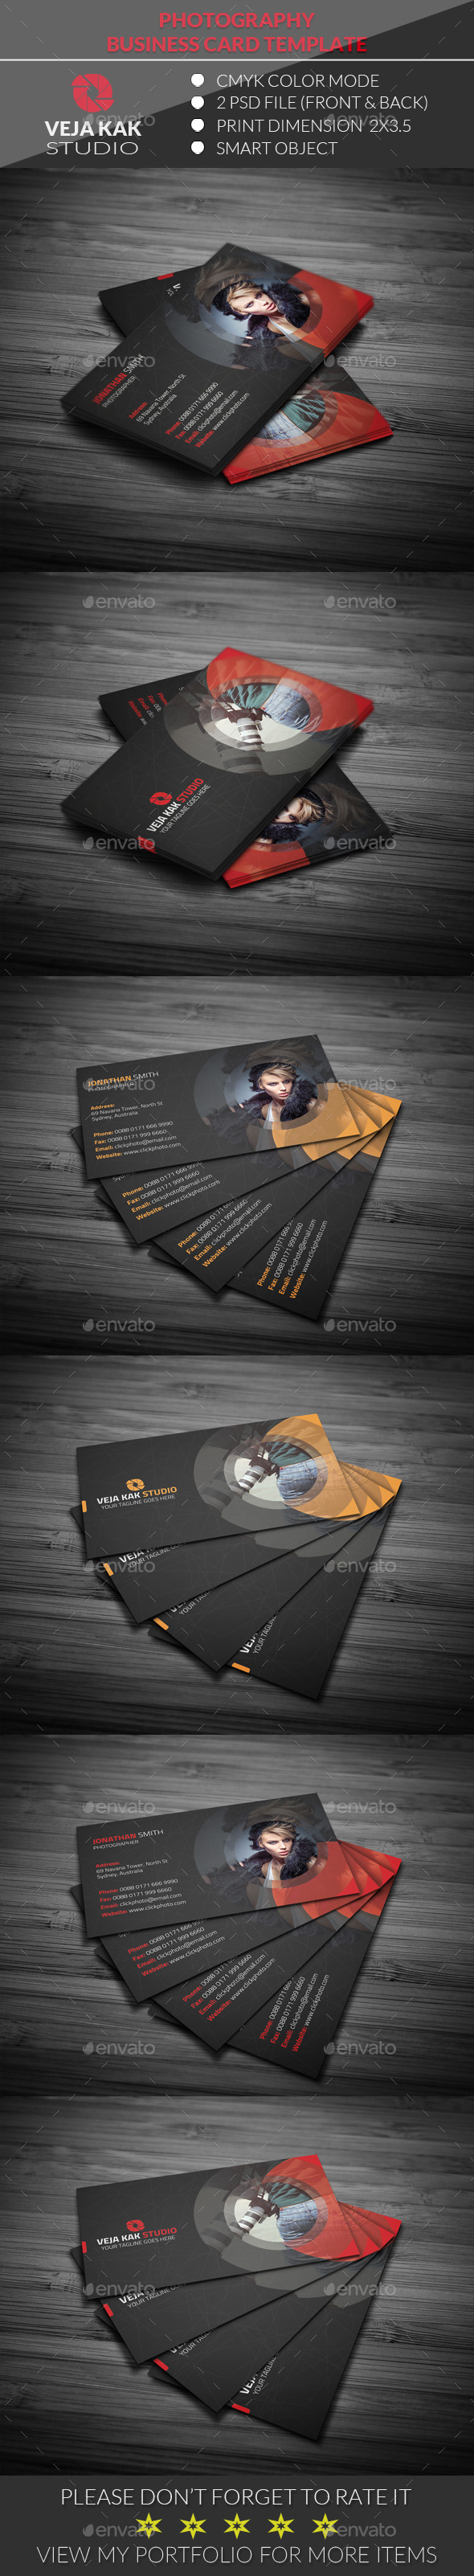 GraphicRiver Photography Business Card 11936227